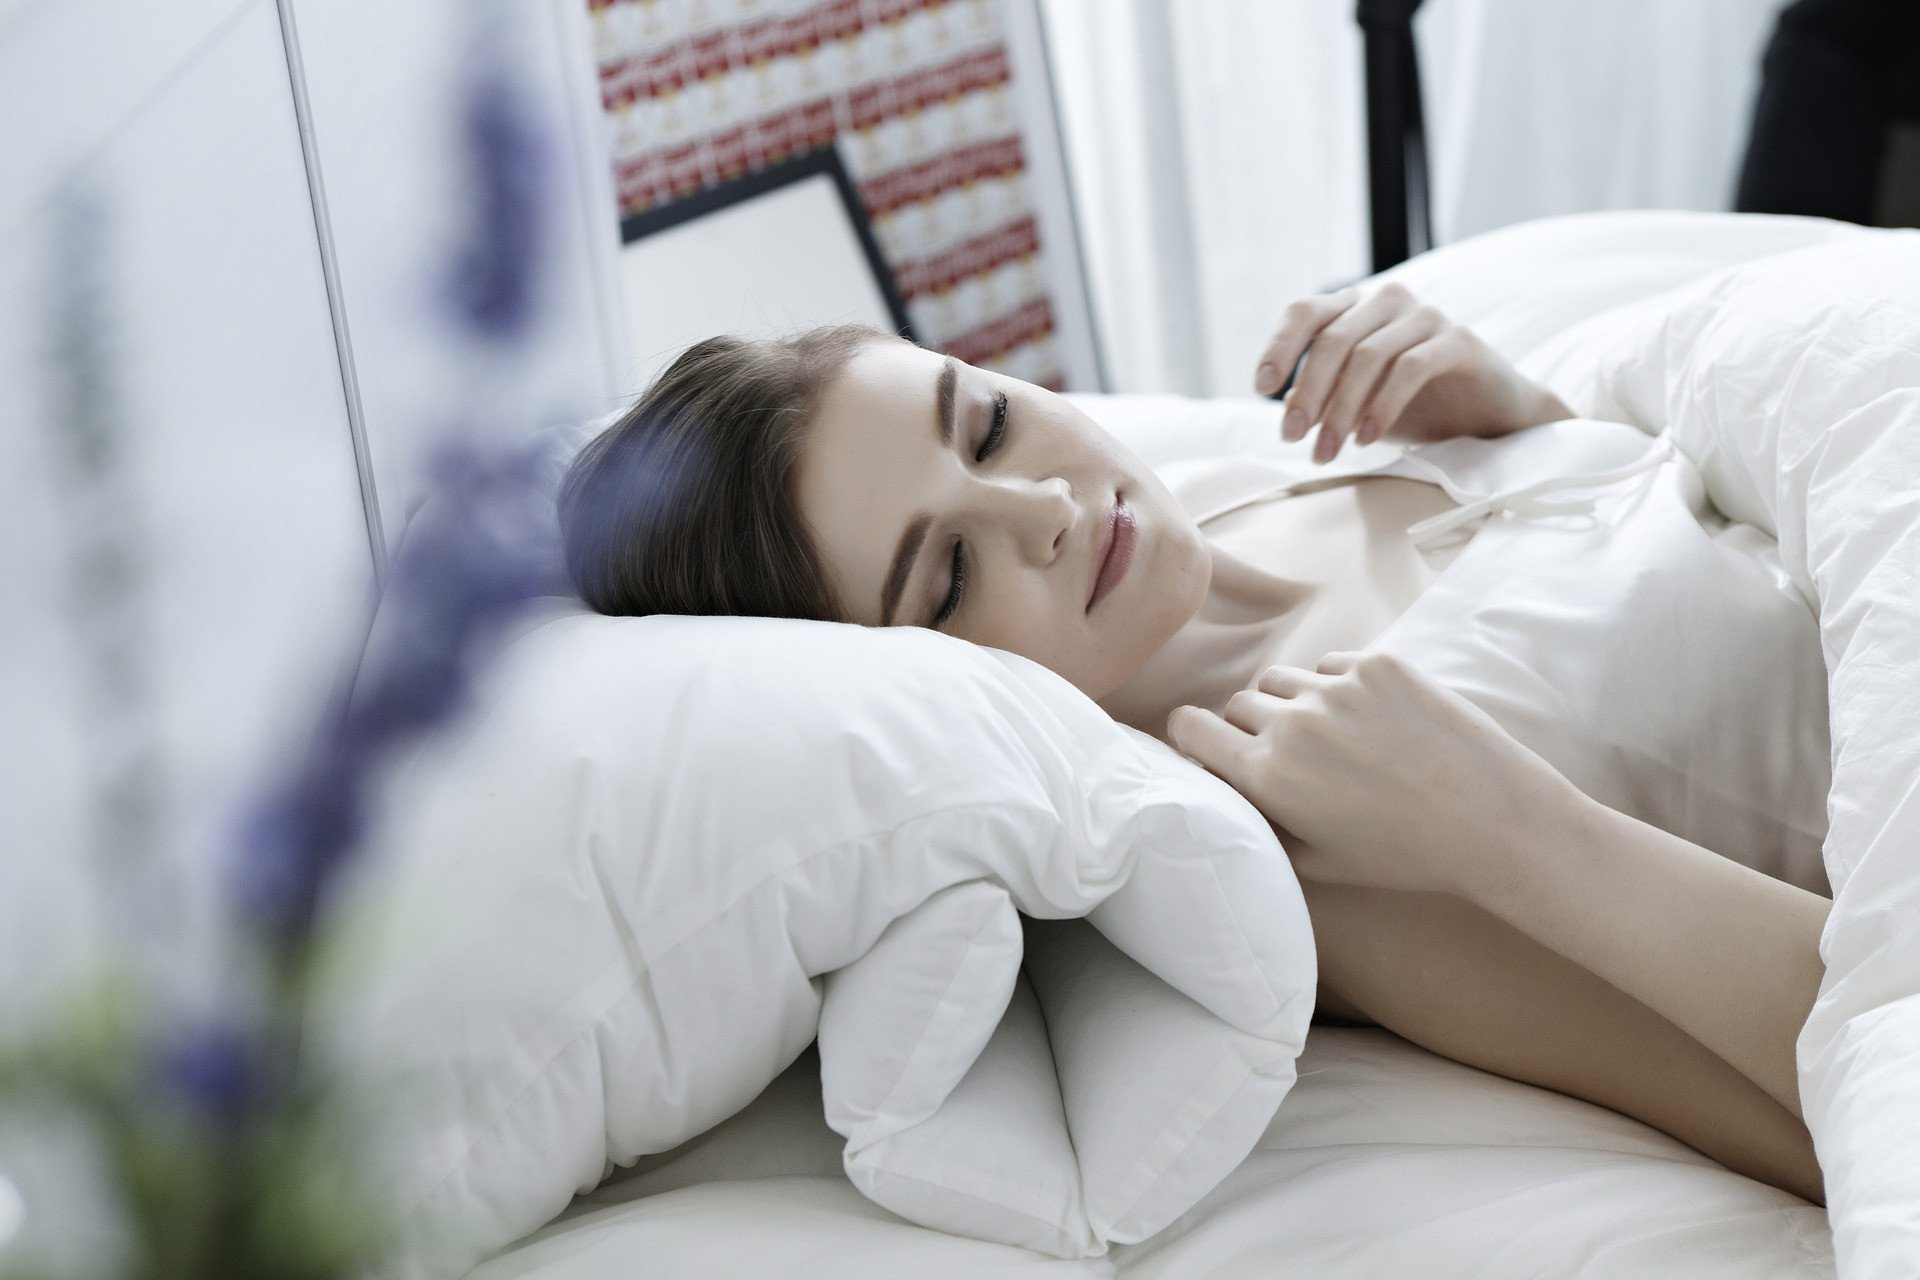 Don't be underestimated, these are 8 benefits of napping that you need to know - JPNN.com